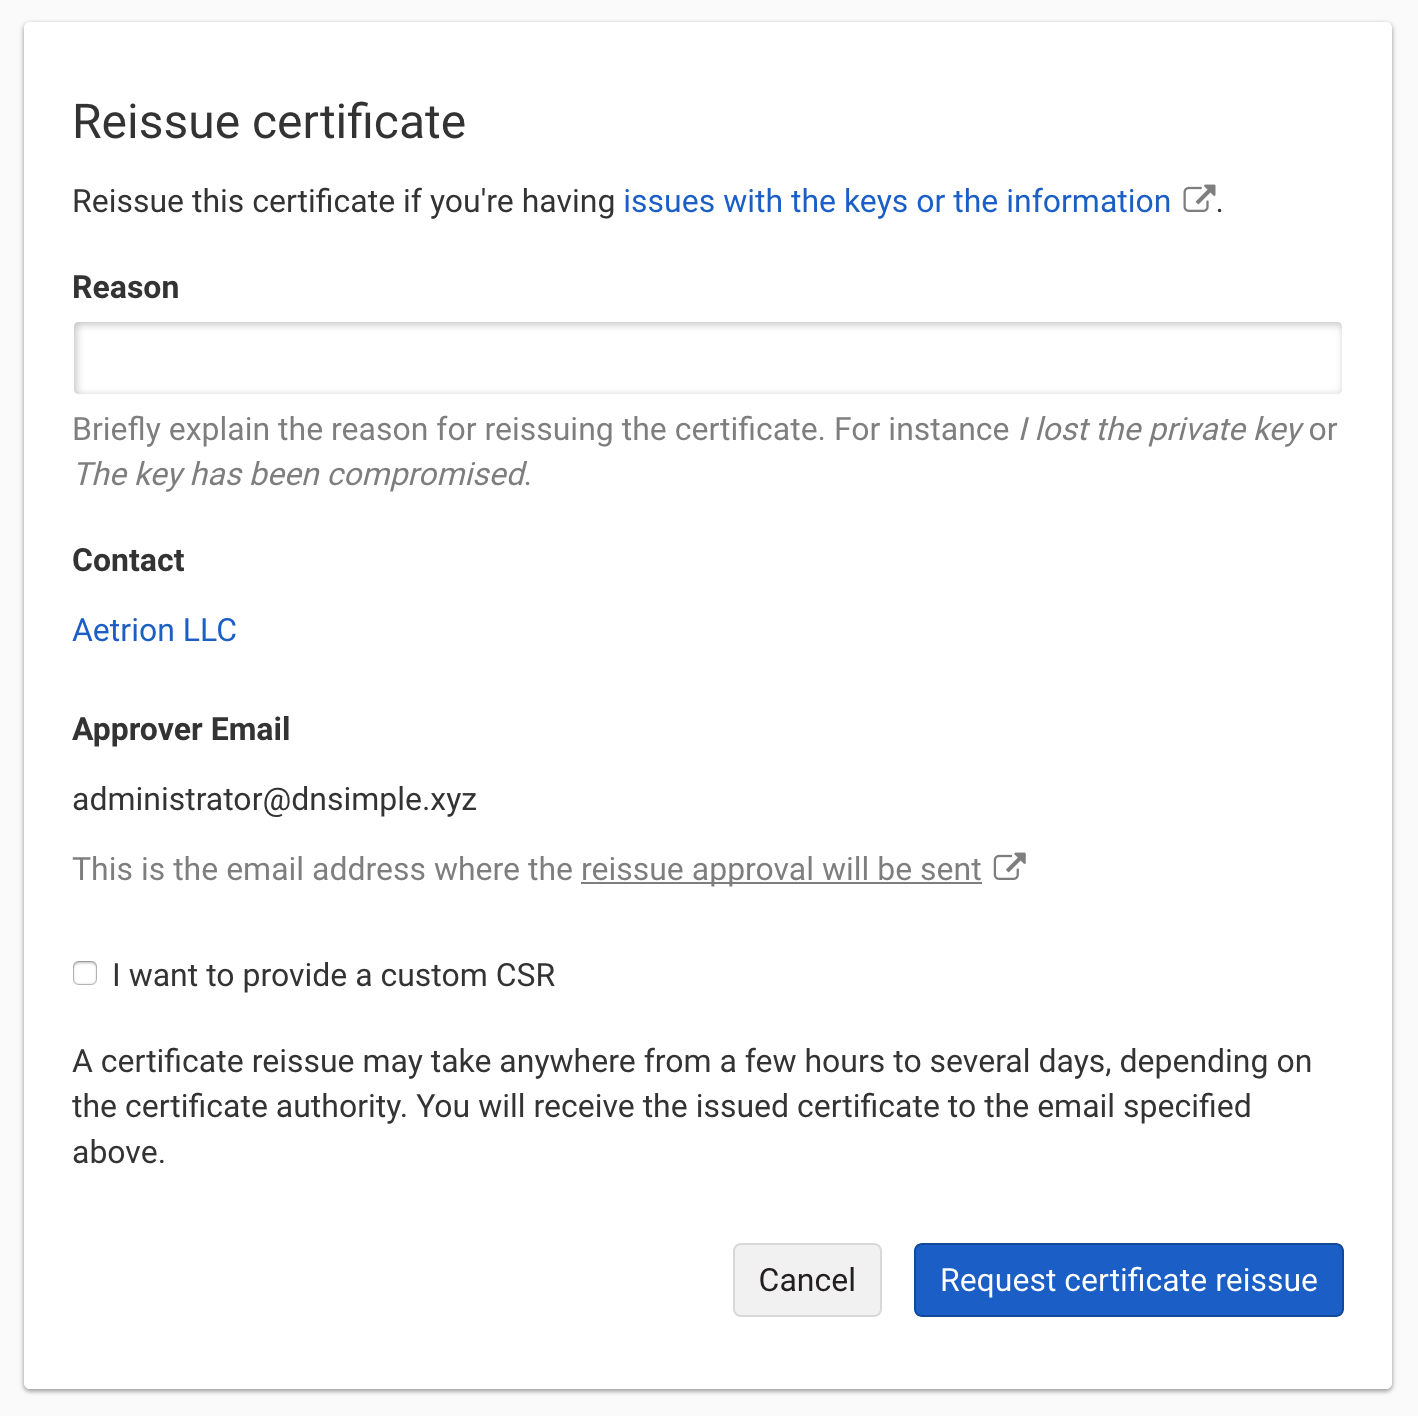 Re issuing an ssl certificate dnsimple help click the link to access the reissue certificate self service section xflitez Image collections